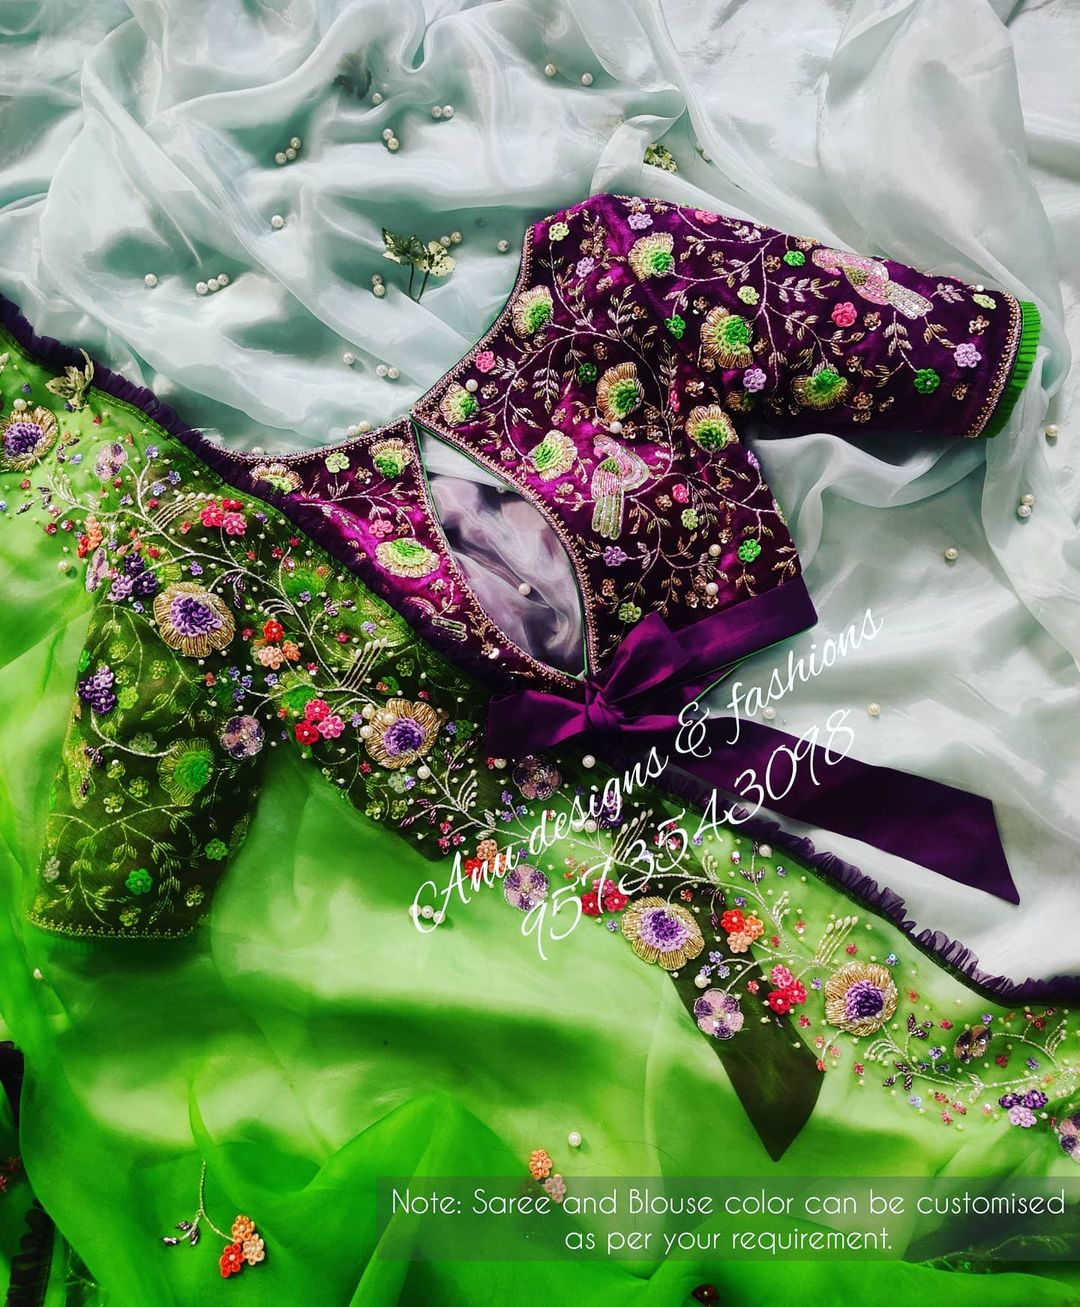 Stunning parrot green color designer saree and purple blouse. Saree and blouse with floral design hand embroidery 3D maggam work. Saree and blouse cost is Rs.35200/-